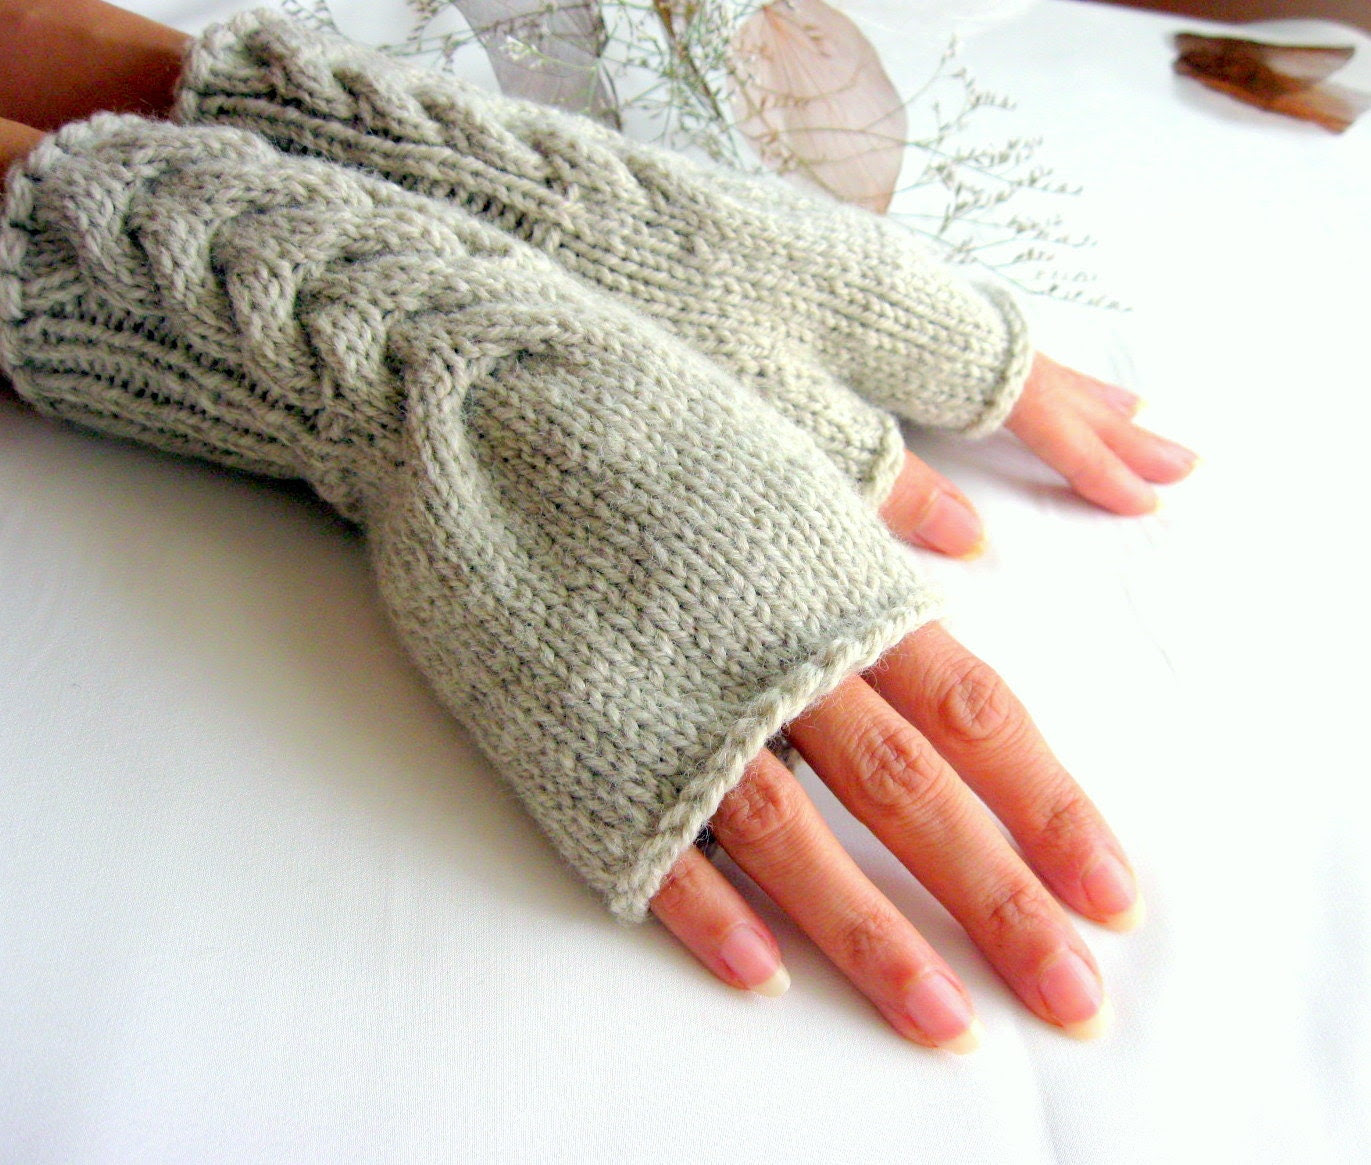 Fingerless Gloves with  a cable pattern in  beige-gray , light taupe